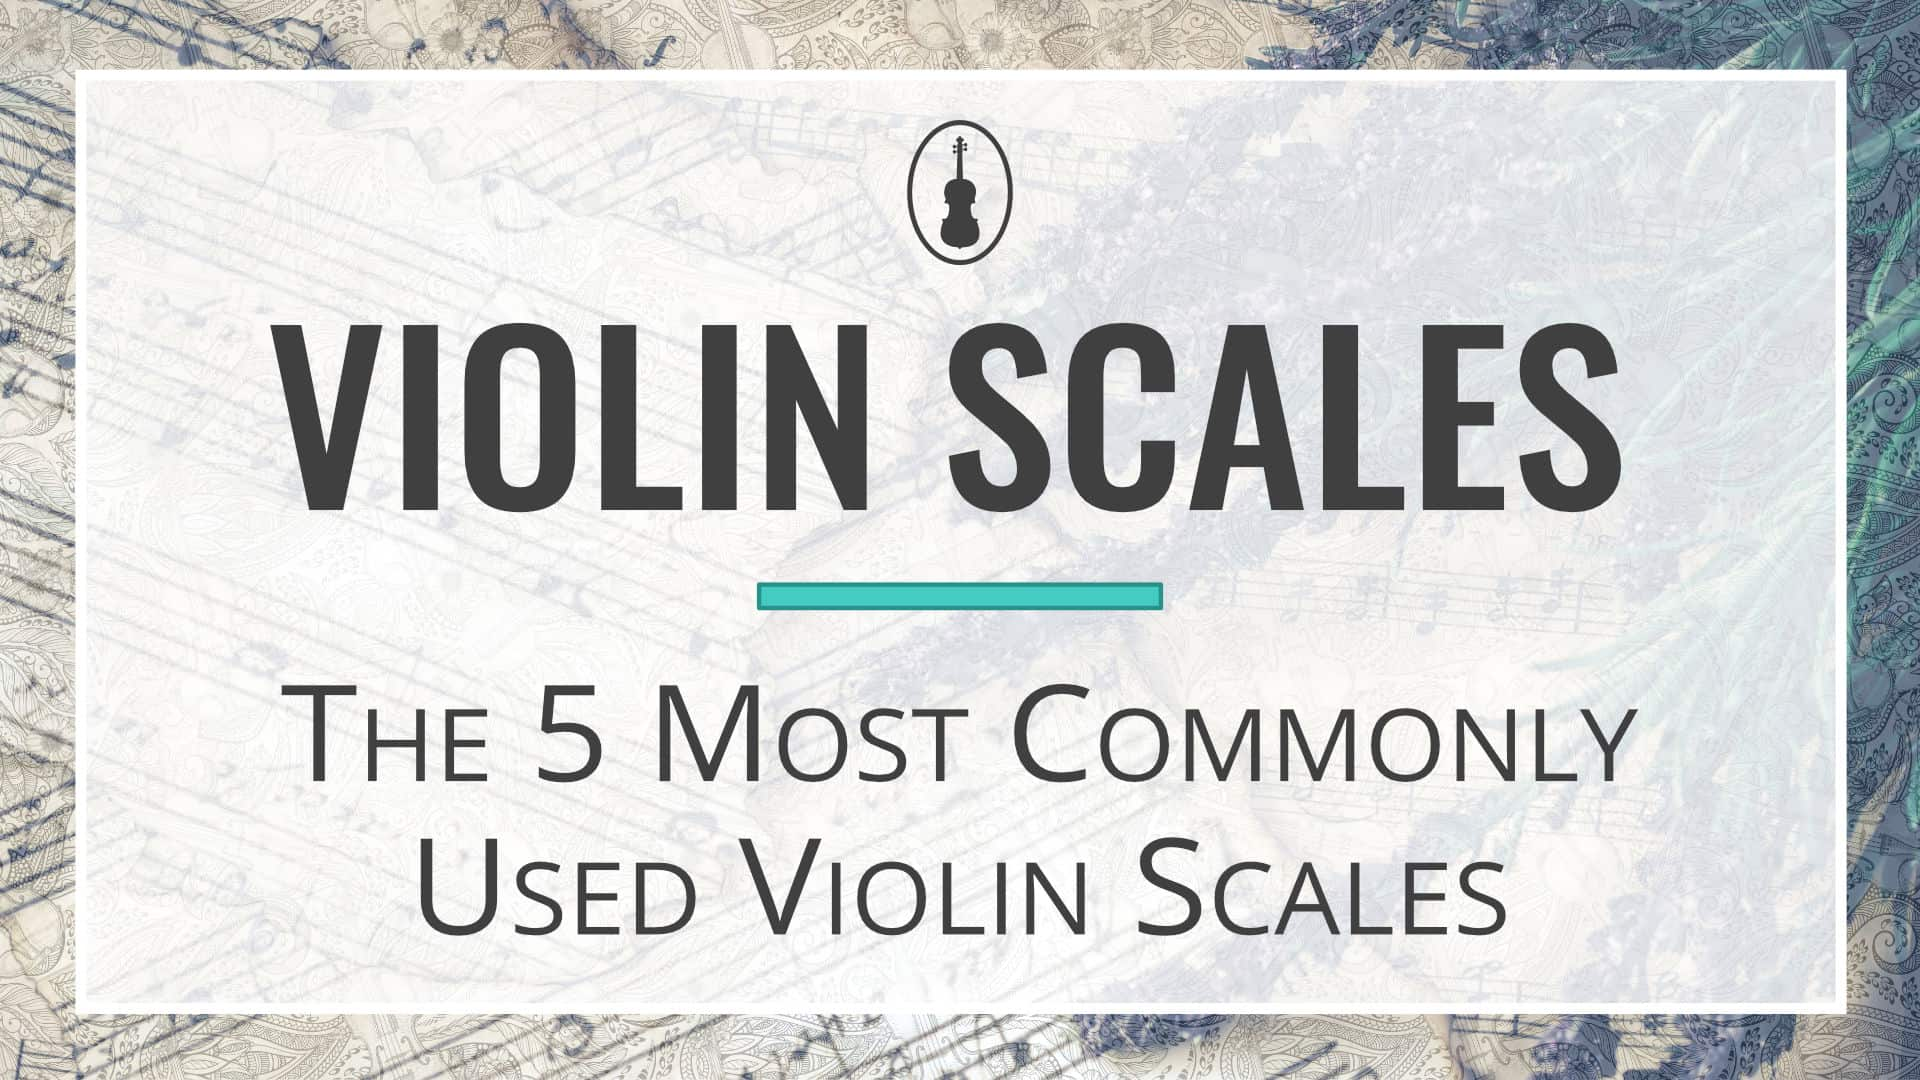 Violin Scales – The 5 Most Commonly Used Violin Scales